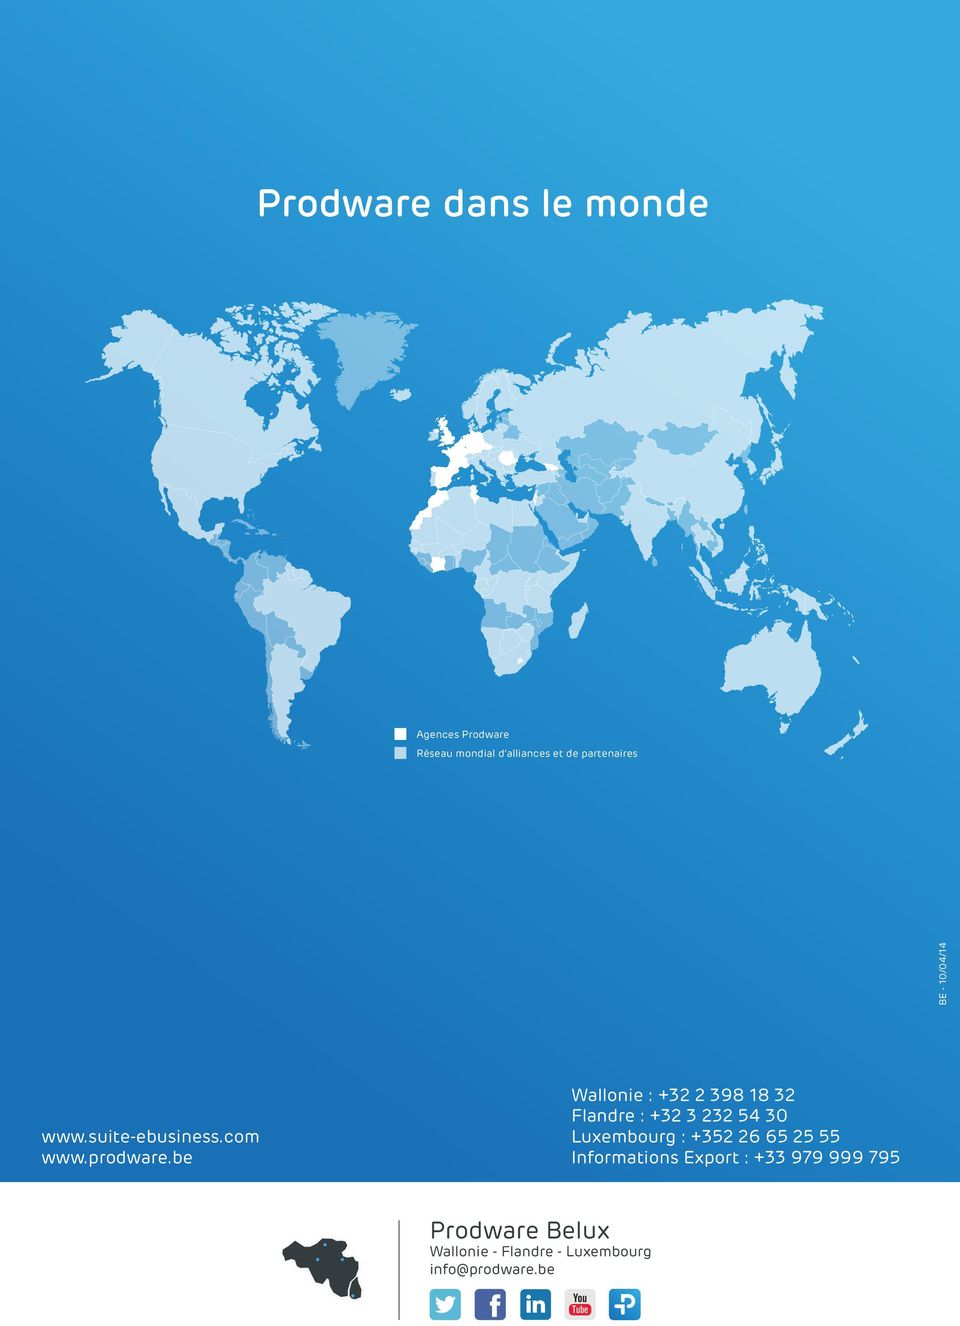 www.suite-ebusiness.com Luxembourg : +352 26 65 25 55 www.prodware.